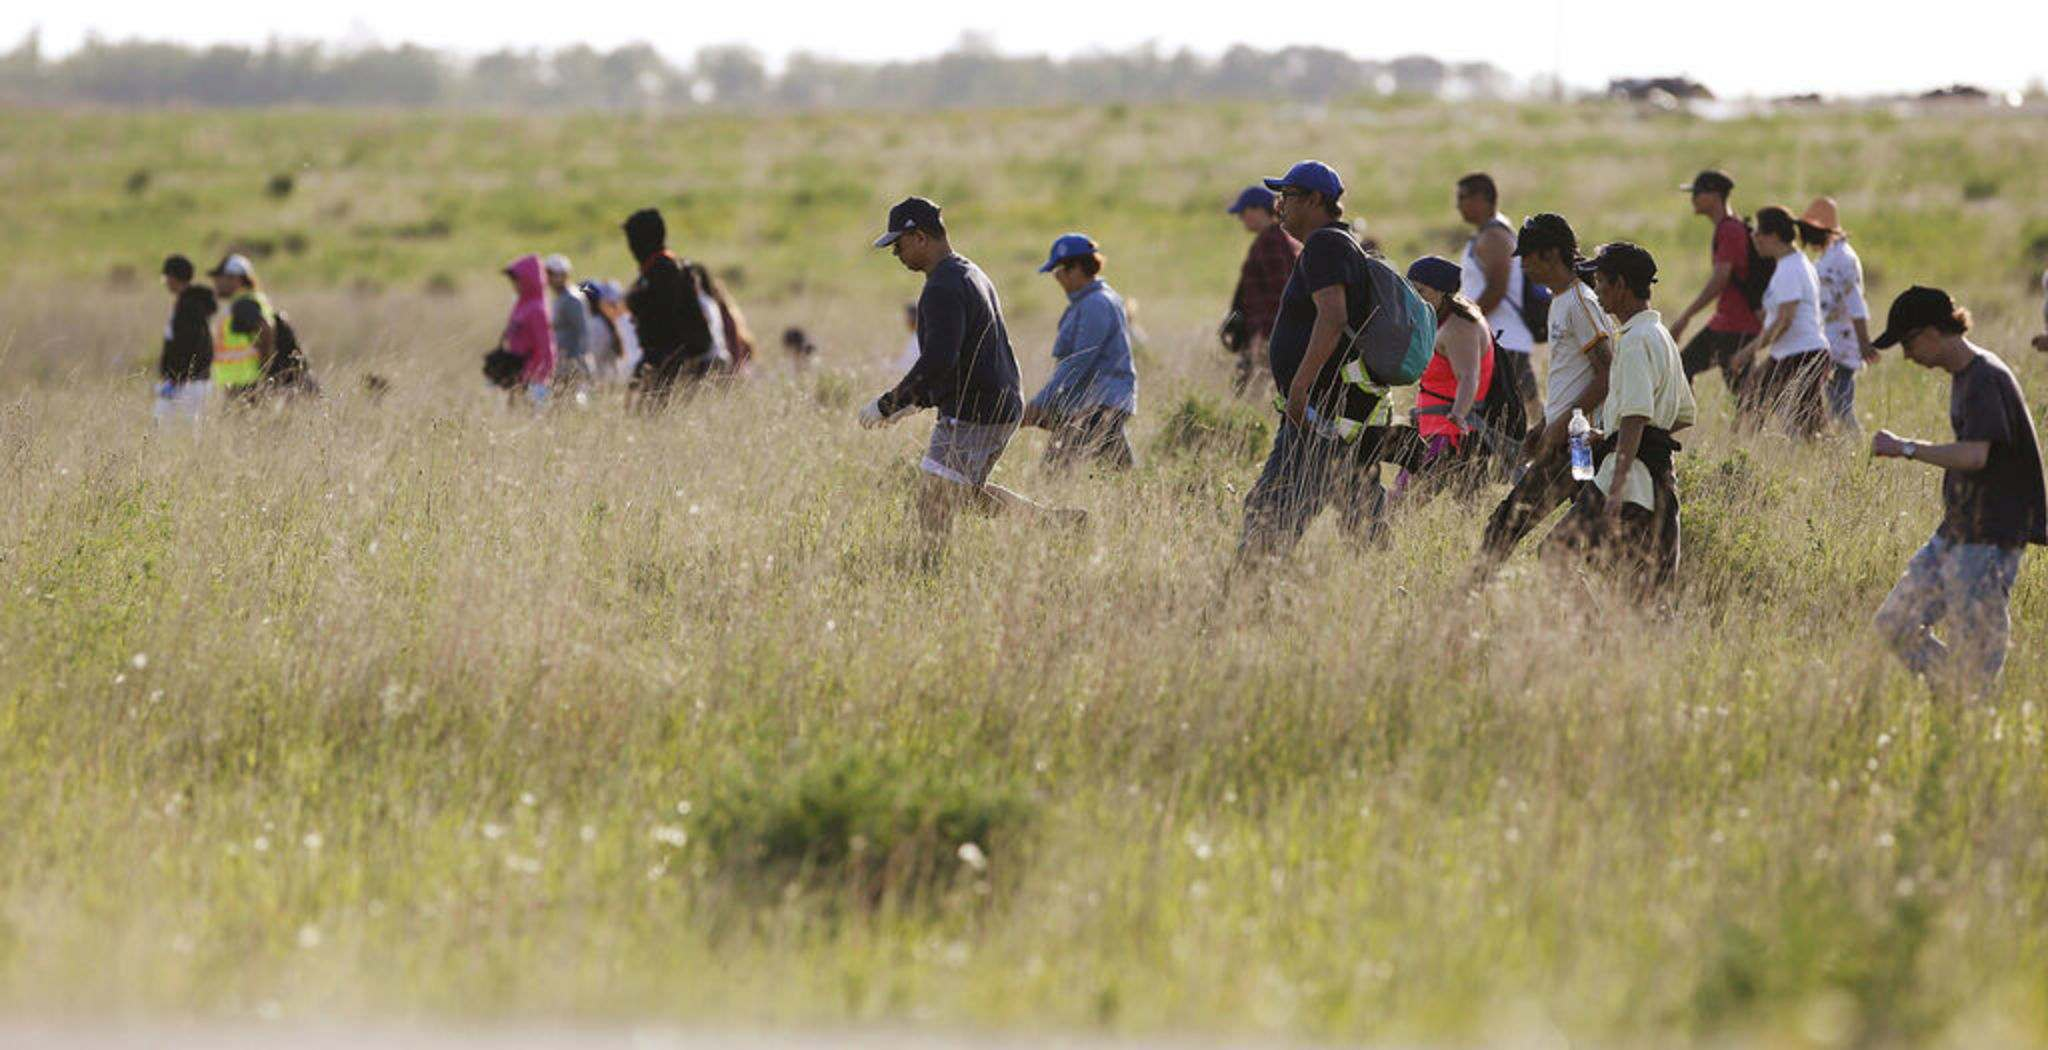 JOHN WOODS / WINNIPEG FREE PRESS FILES</p><p>Volunteers searched for Eduardo Balaquit in a field just outside the perimeter highway in Winnipeg shortly after his disappearance.</p>